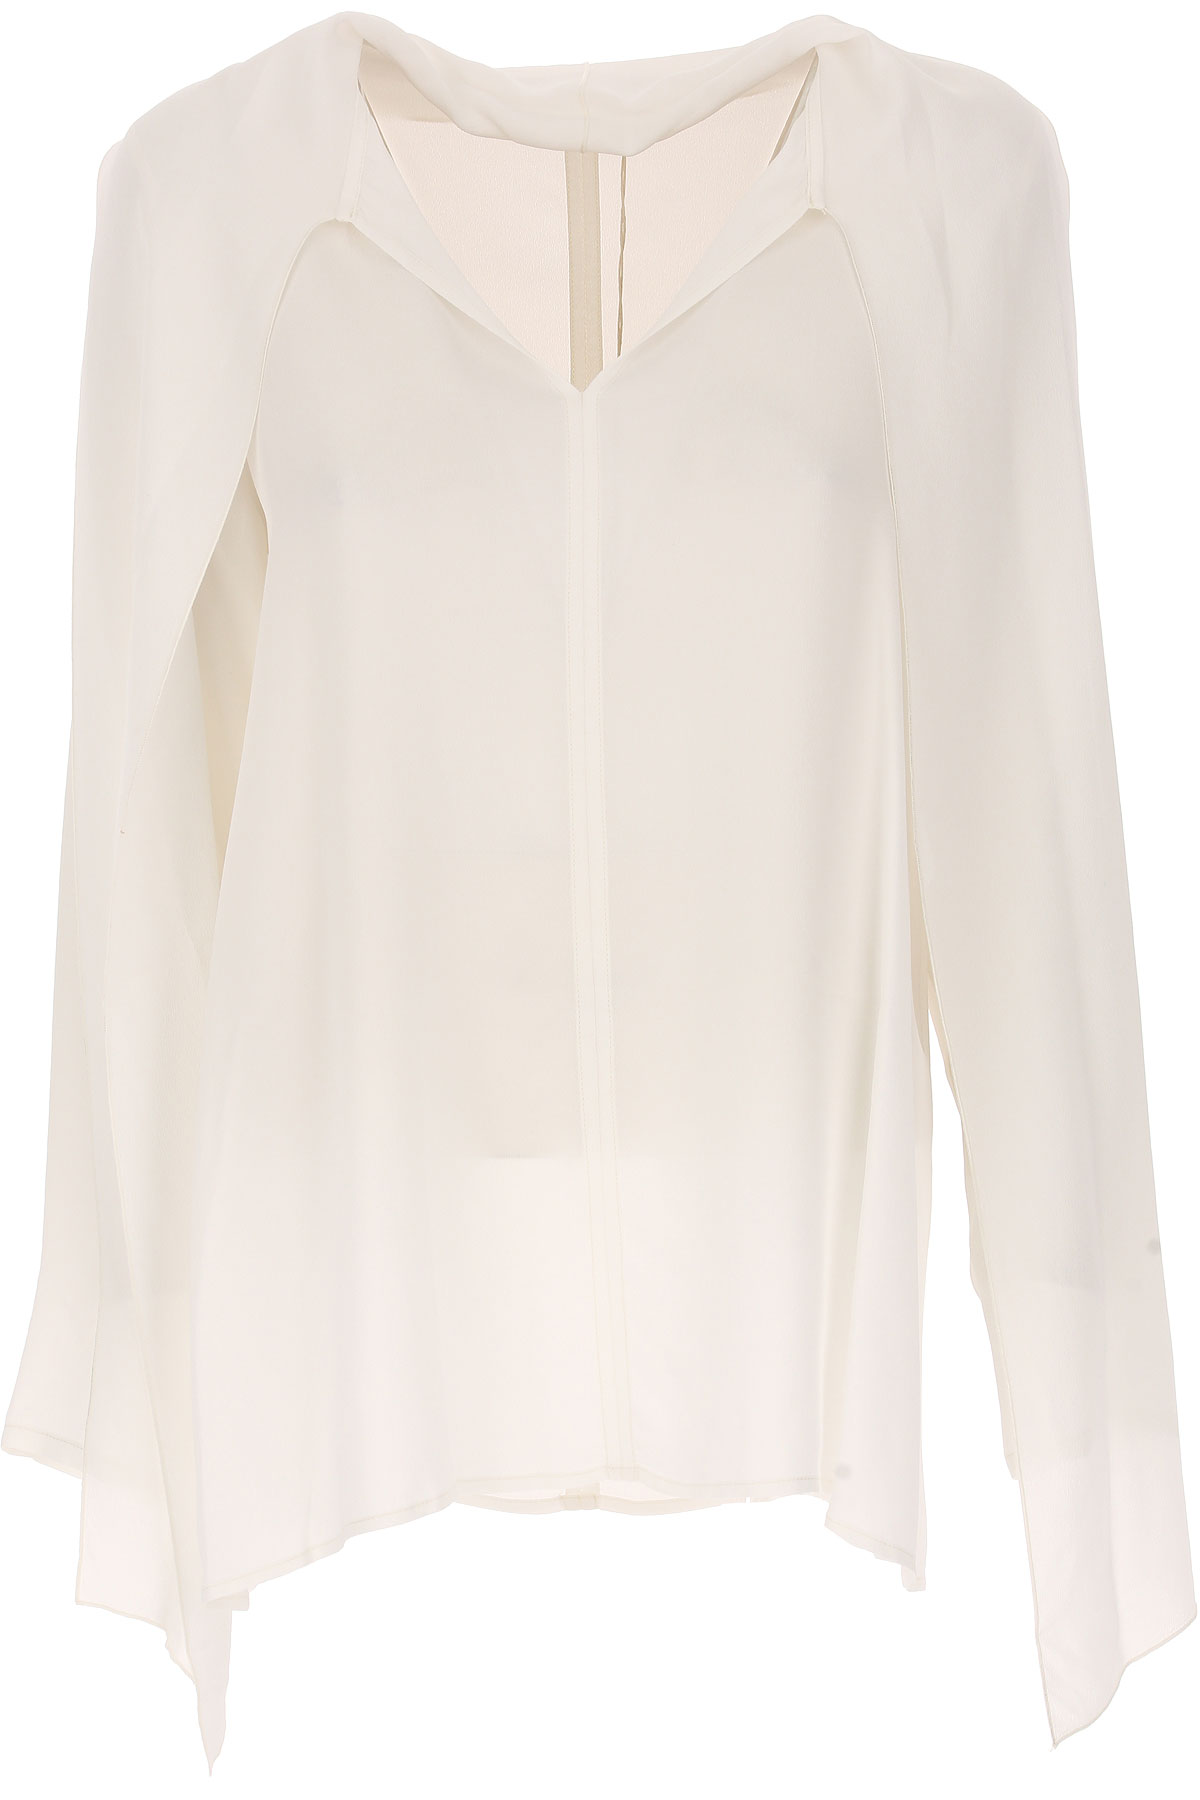 Image of Her Shirt Shirt for Women On Sale, White, Viscose, 2017, 6 8